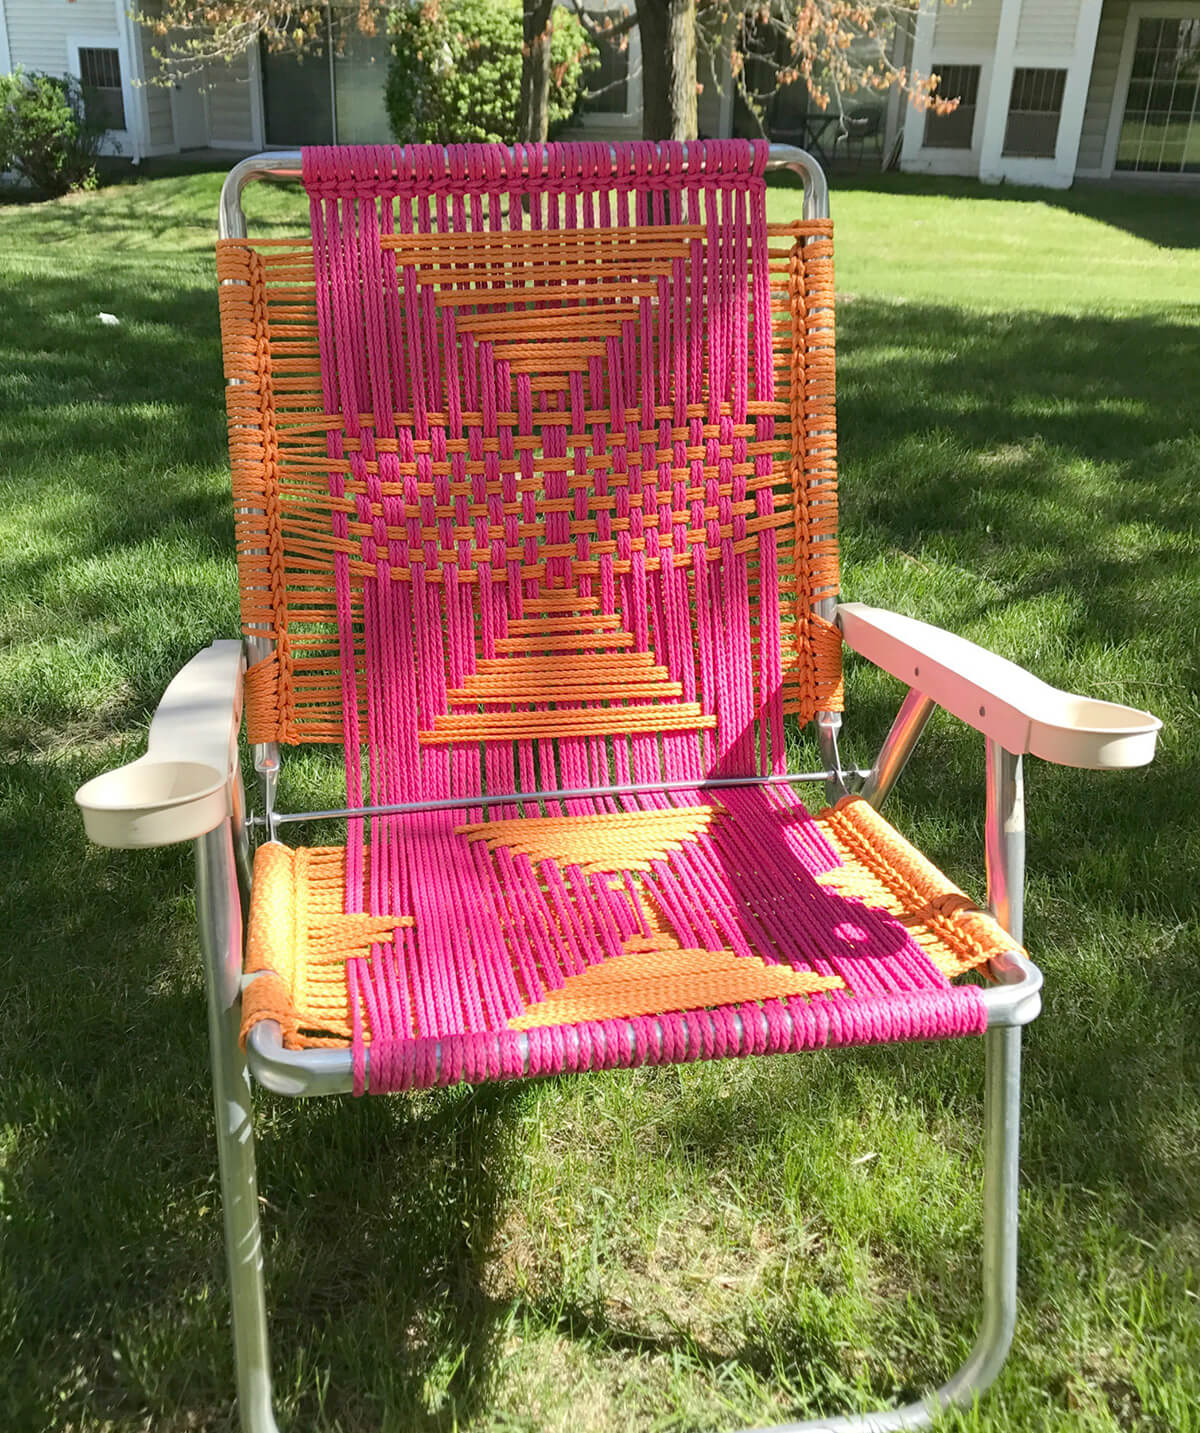 45 Best Diy Outdoor Furniture Projects Ideas And Designs For 2021